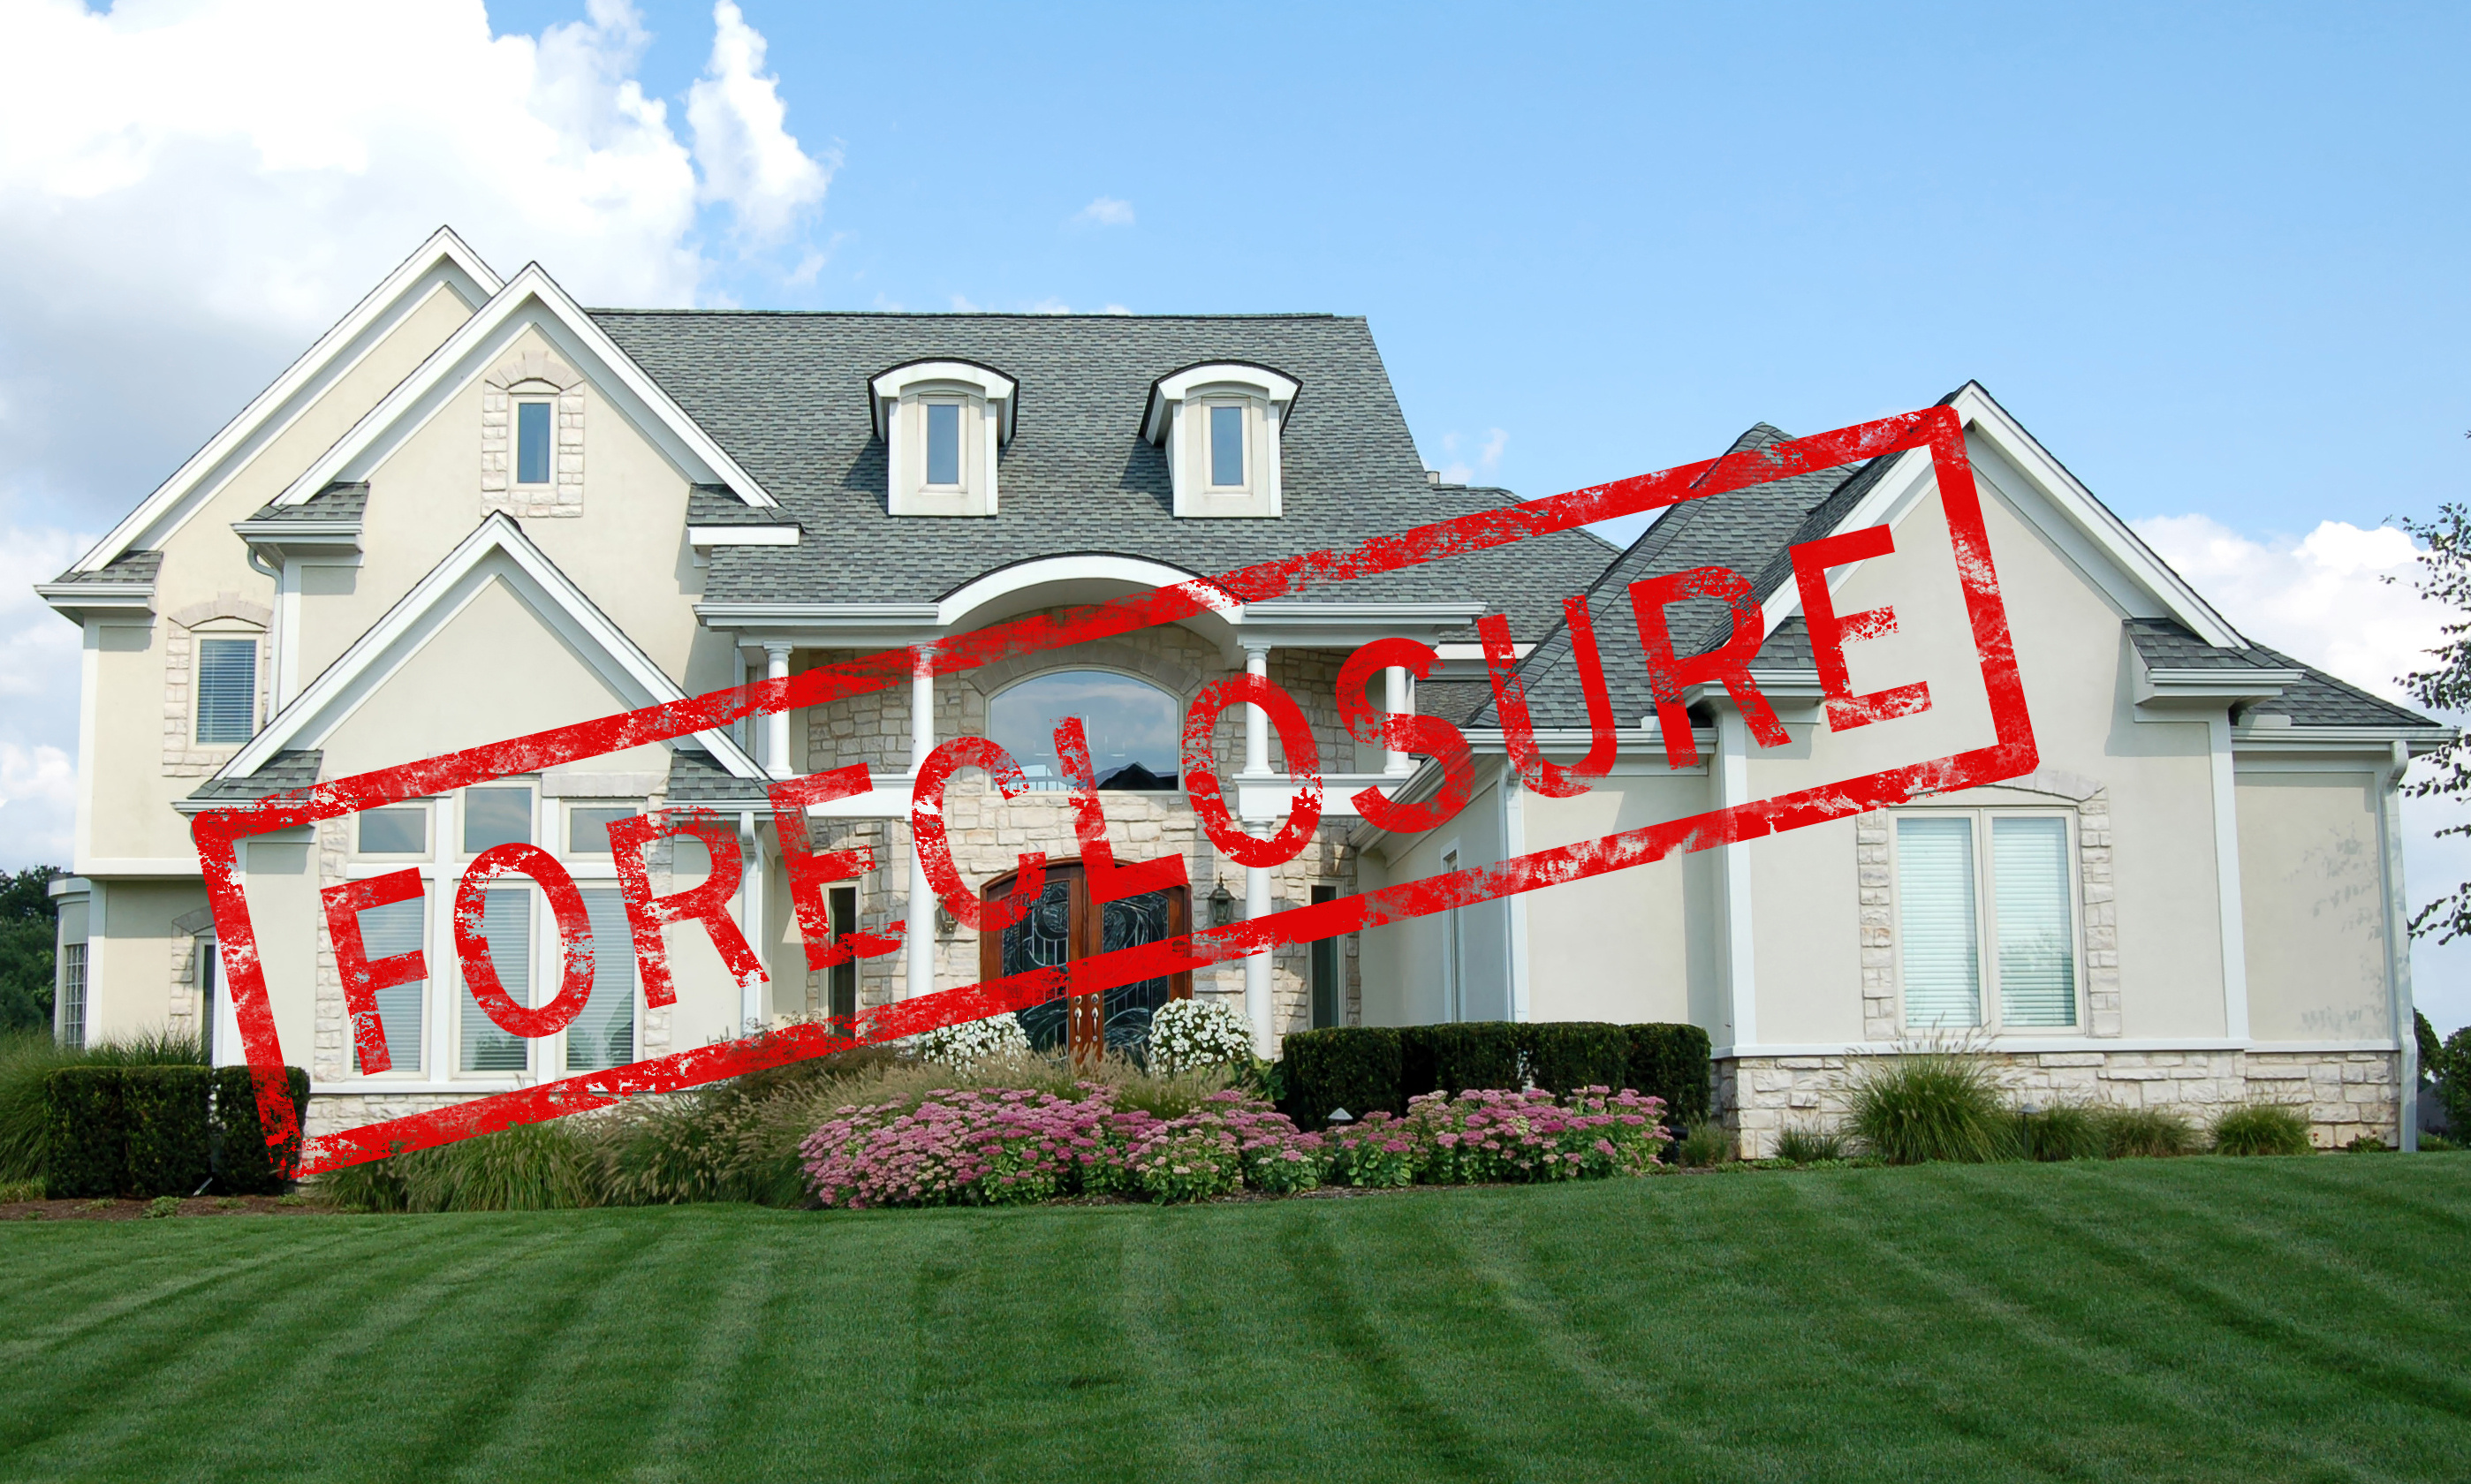 Call Tri-County Appraisals to discuss appraisals for Larimer foreclosures